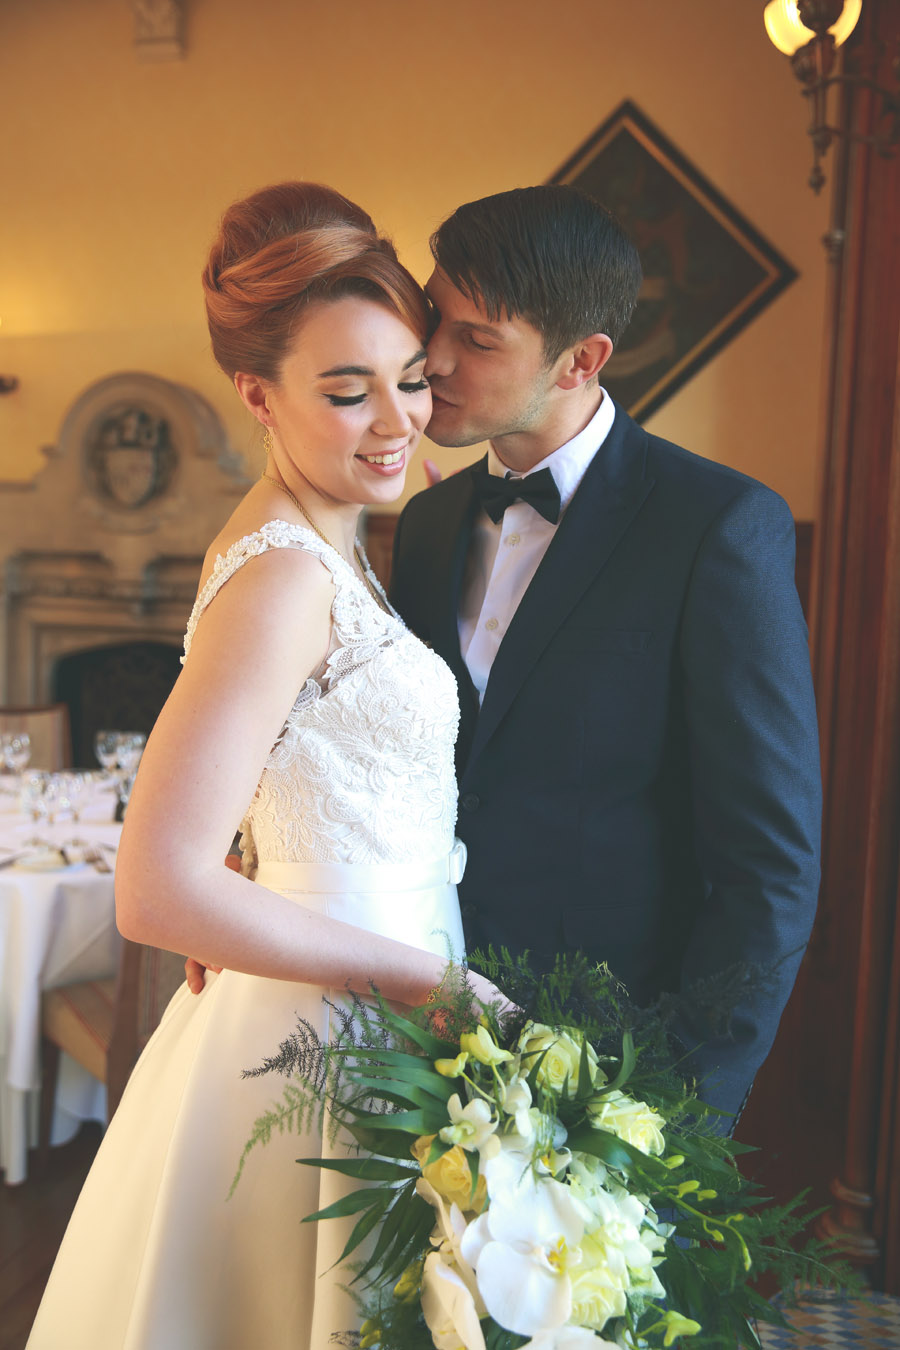 Classic couture wedding styling at the Elvetham, image credit Nicola Rowley Photography (11)